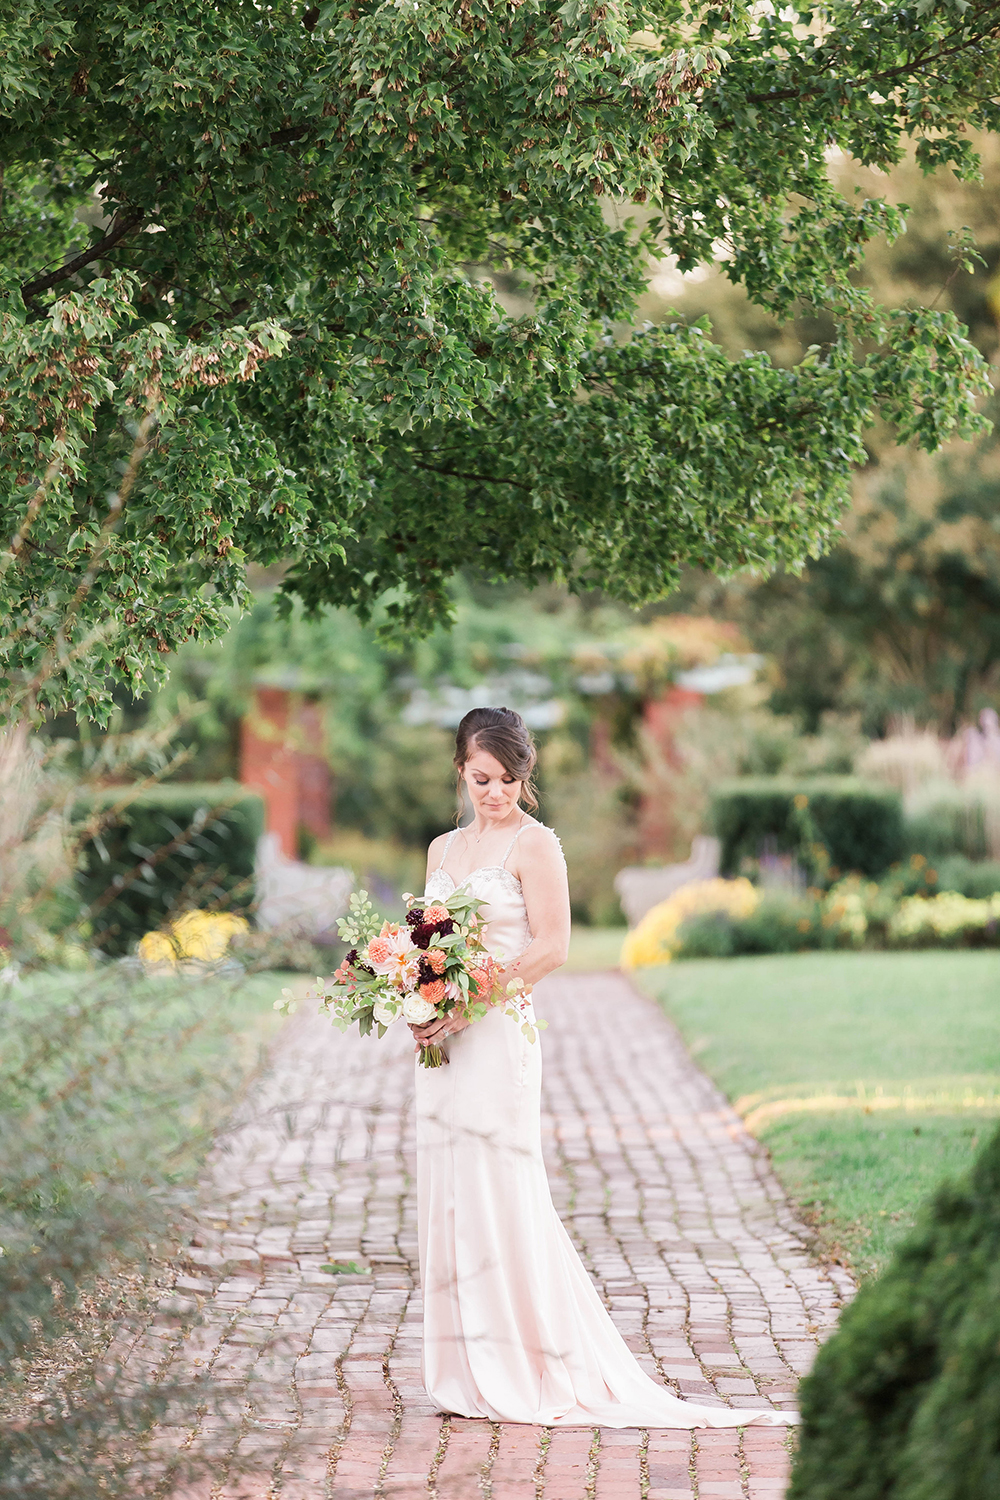 bridal style - photo by Candice Adelle Photography http://ruffledblog.com/historic-garden-wedding-inspiration